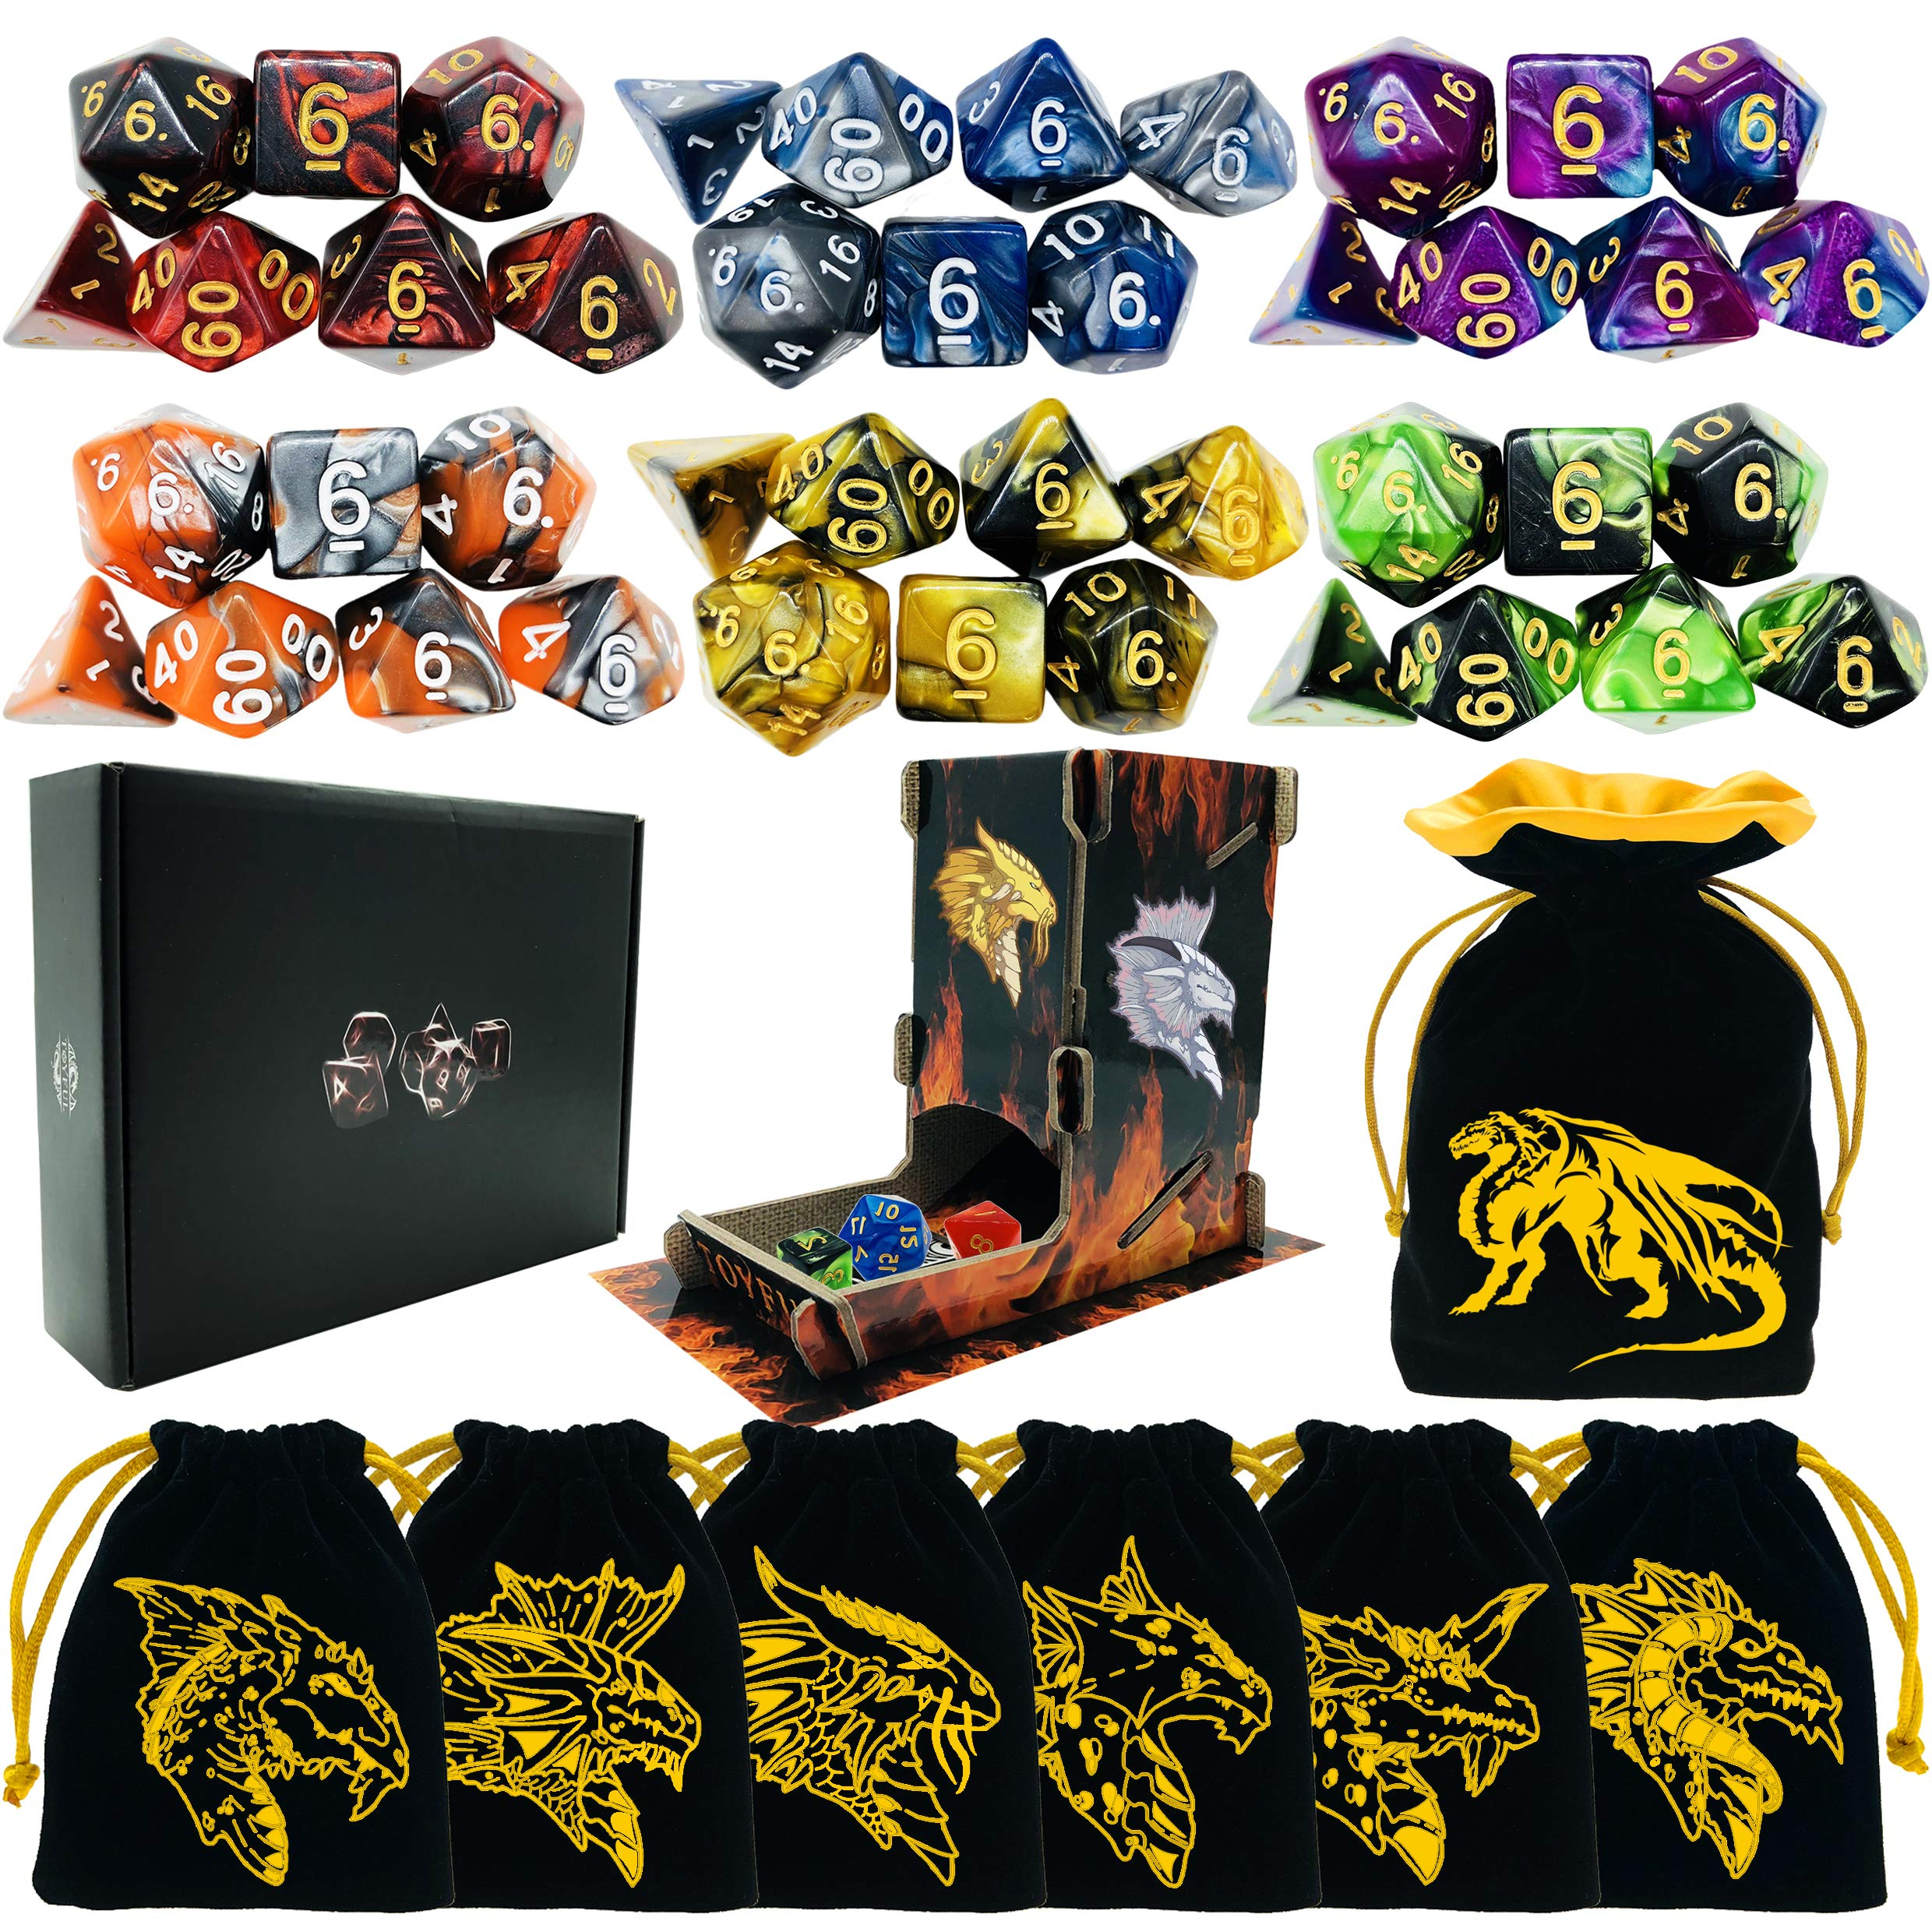 TOYFUL 6 Sets Double-Colors Dnd Dice Polyhedral Dungeons and Dragons DND RPG MTG Table Game Dice Bulk with Seven FREE Drawstring Bags and D&D Dice Tower Gift Package Black by TOYFUL